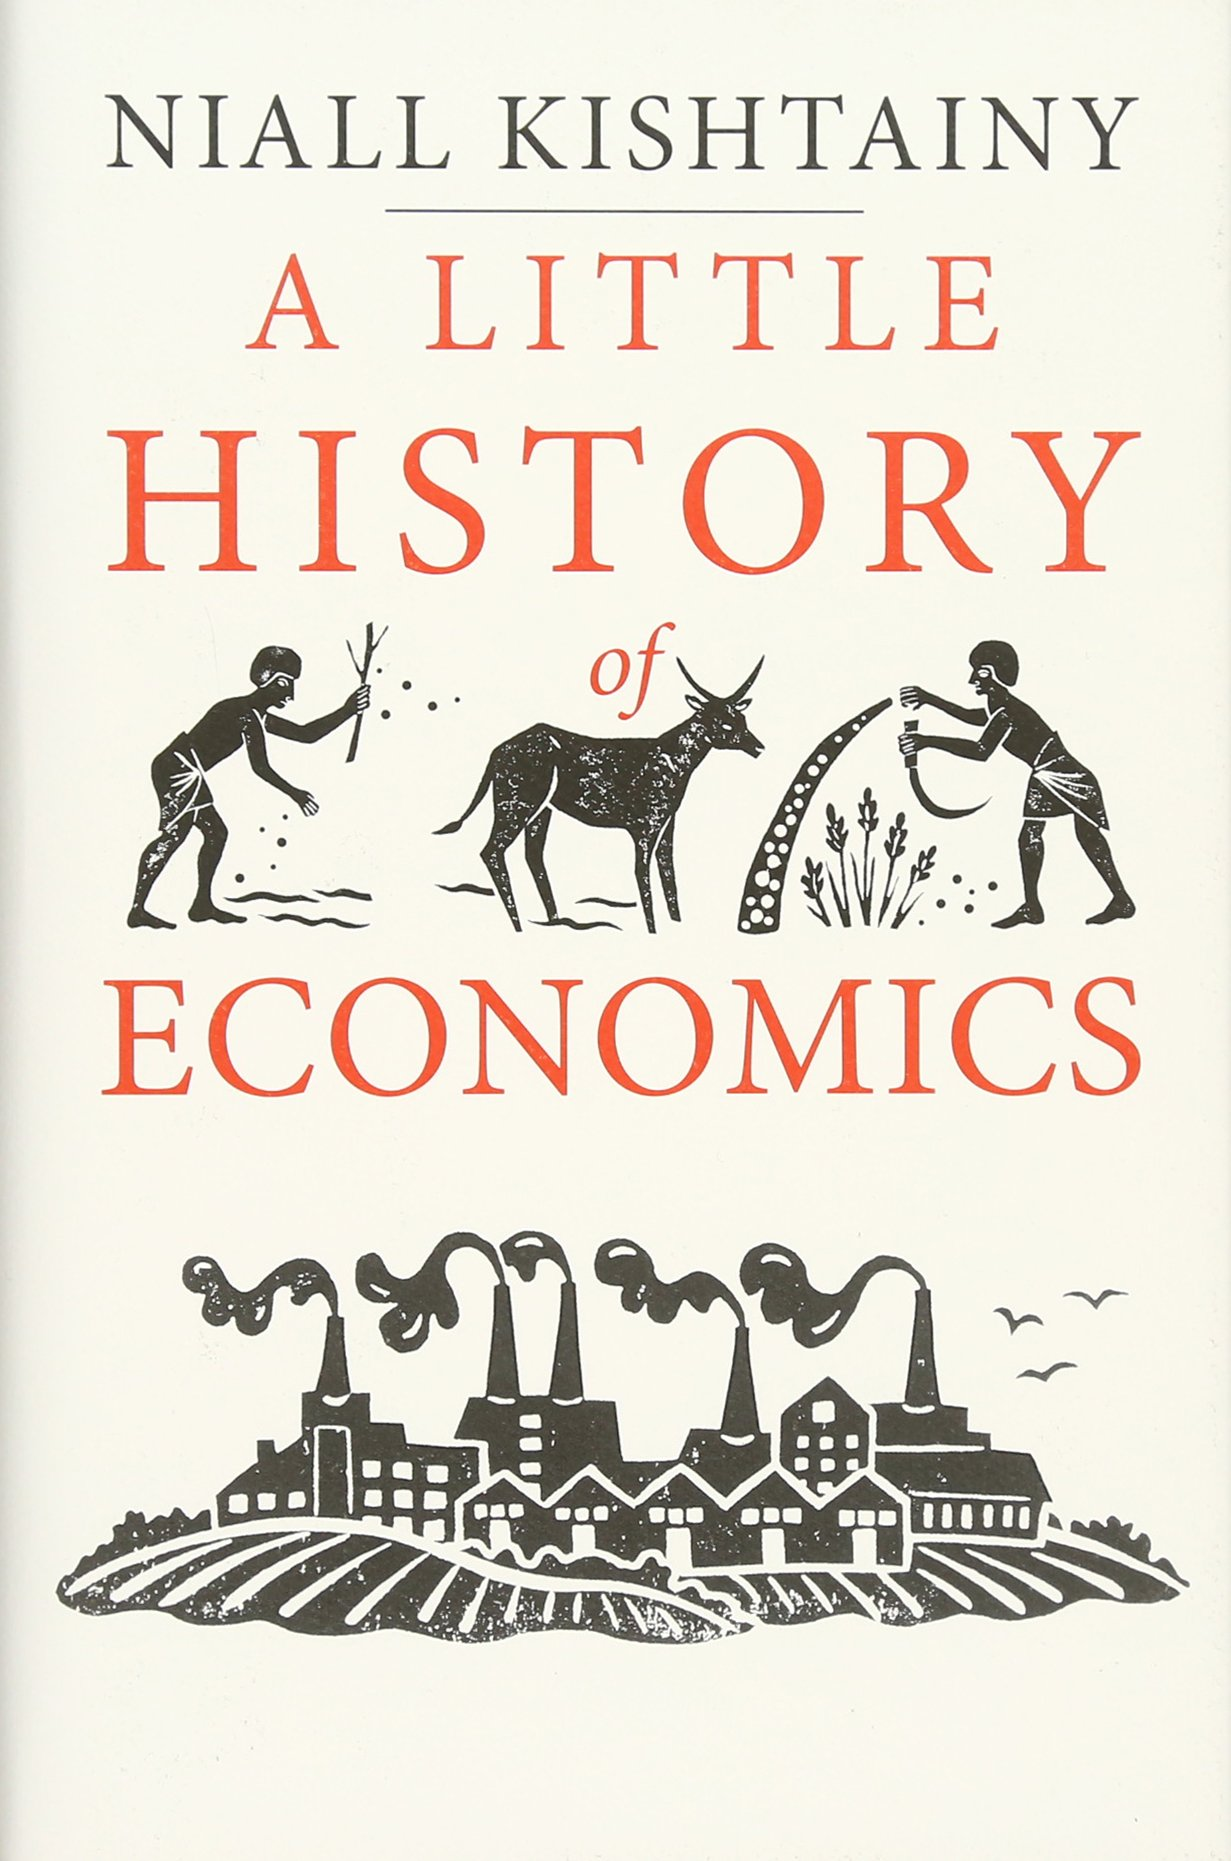 Buy A Little History of Economics (Little Histories) Book Online at Low  Prices in India | A Little History of Economics (Little Histories) Reviews  & Ratings ...